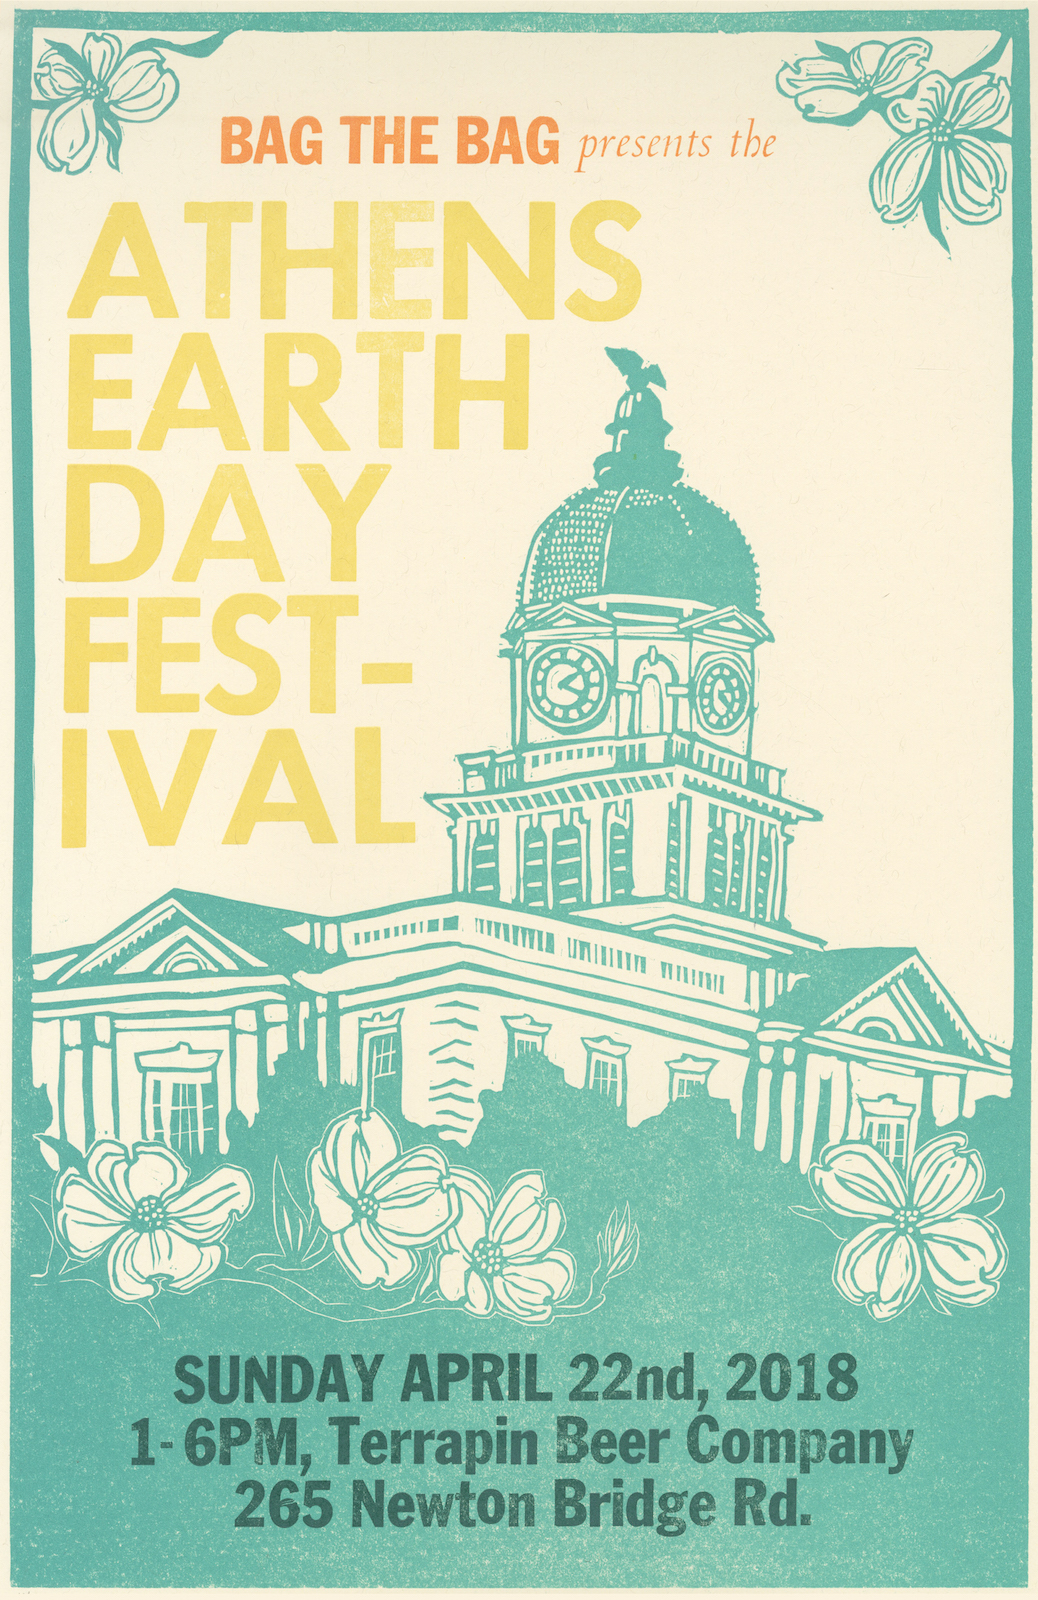 Athens Earth Day Festival 2018